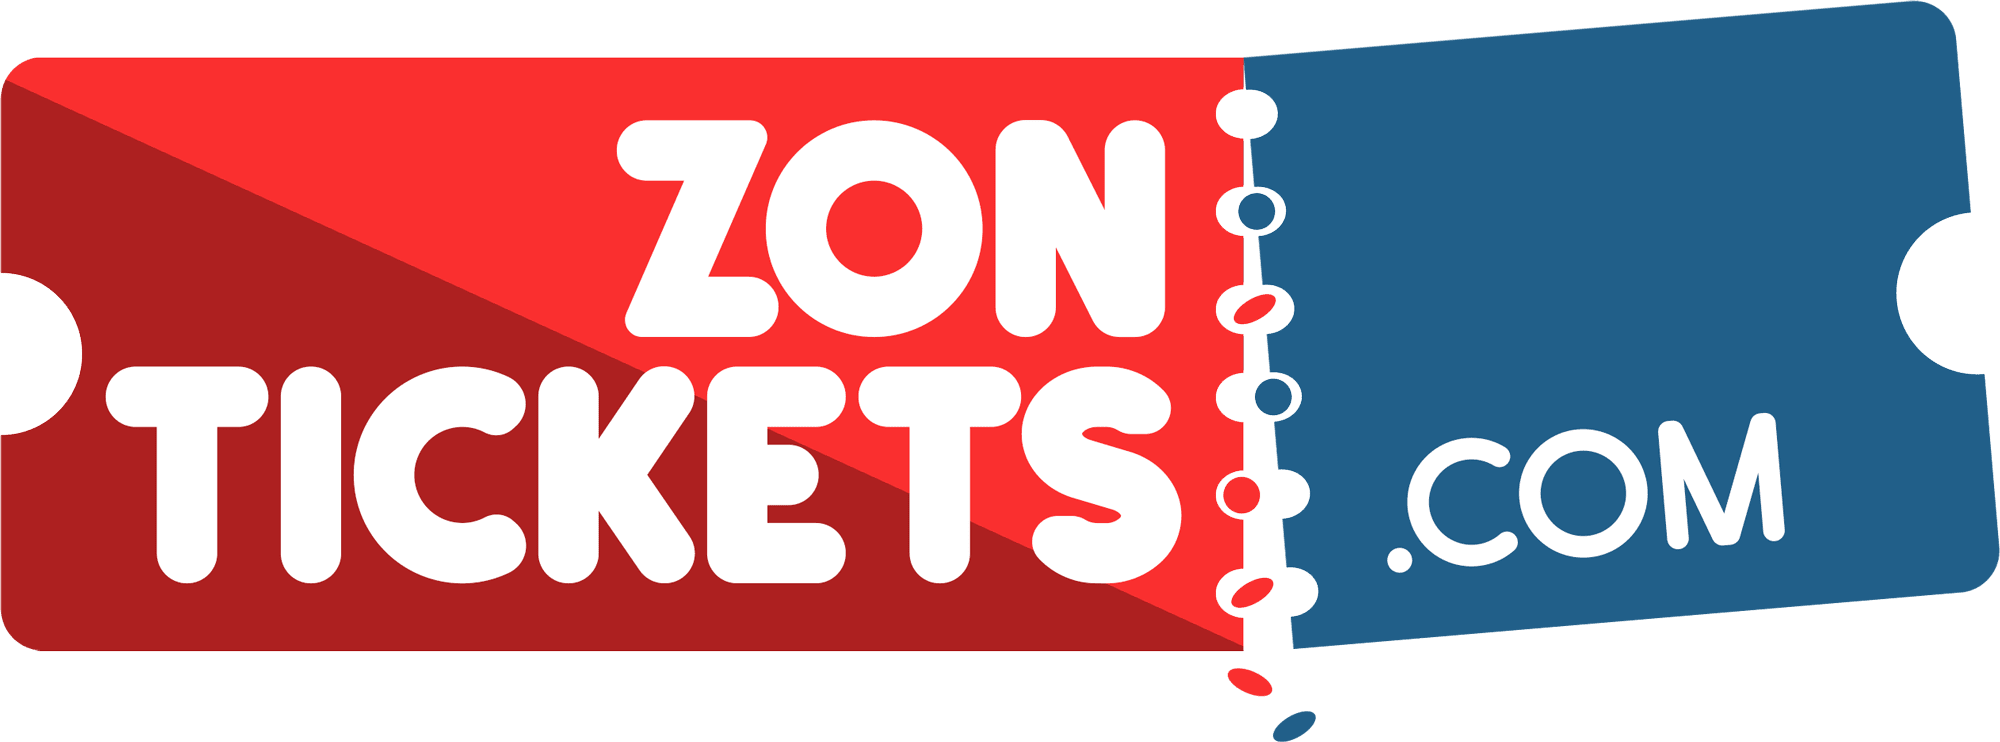 ZonTickets